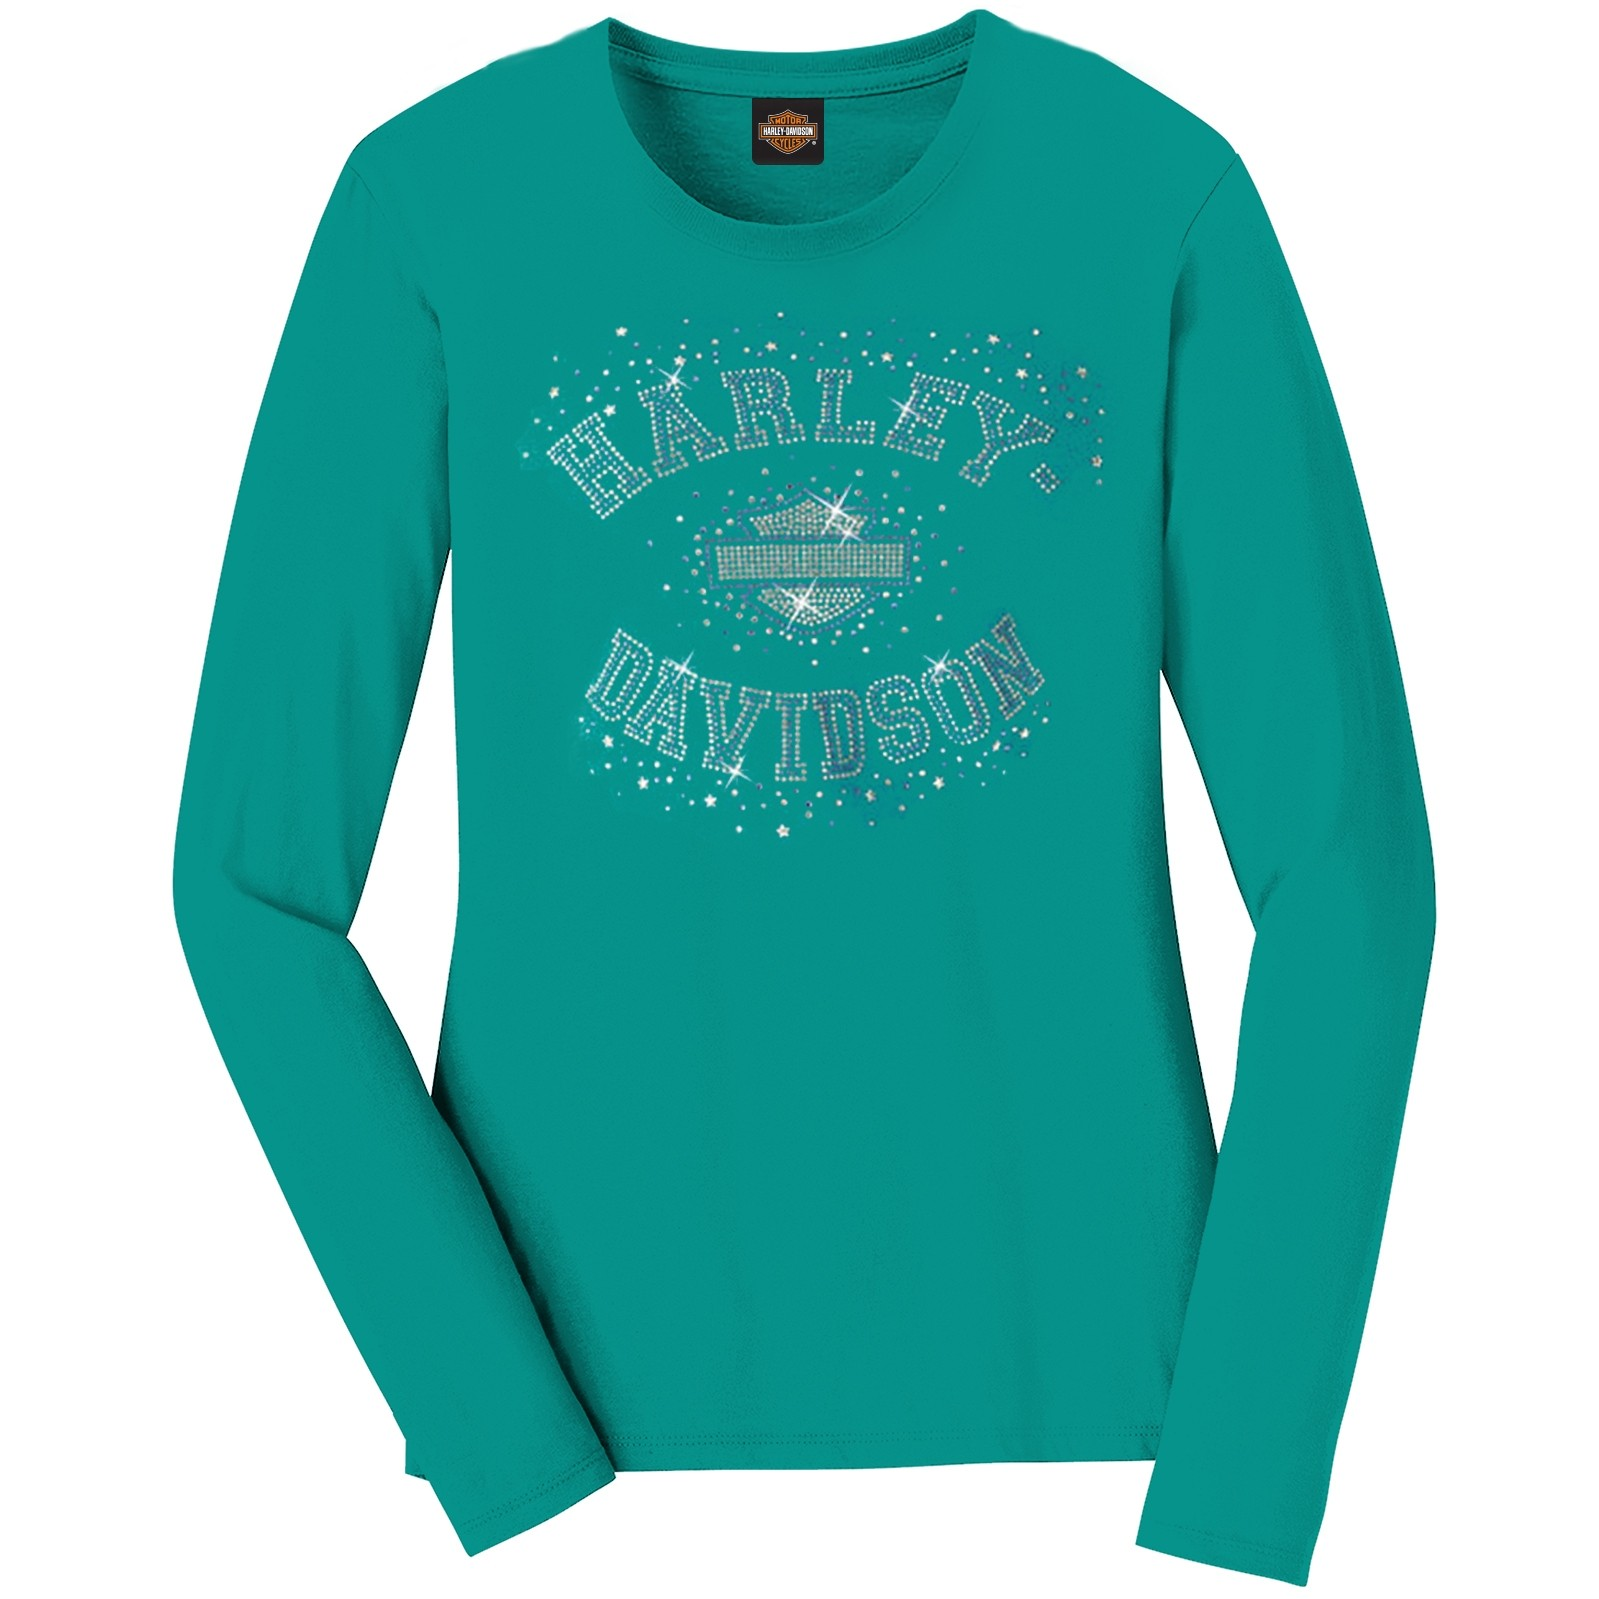 Harley-Davidson Women's Long-Sleeve T-shirt with Bling - Osan Air Base | Starstruck